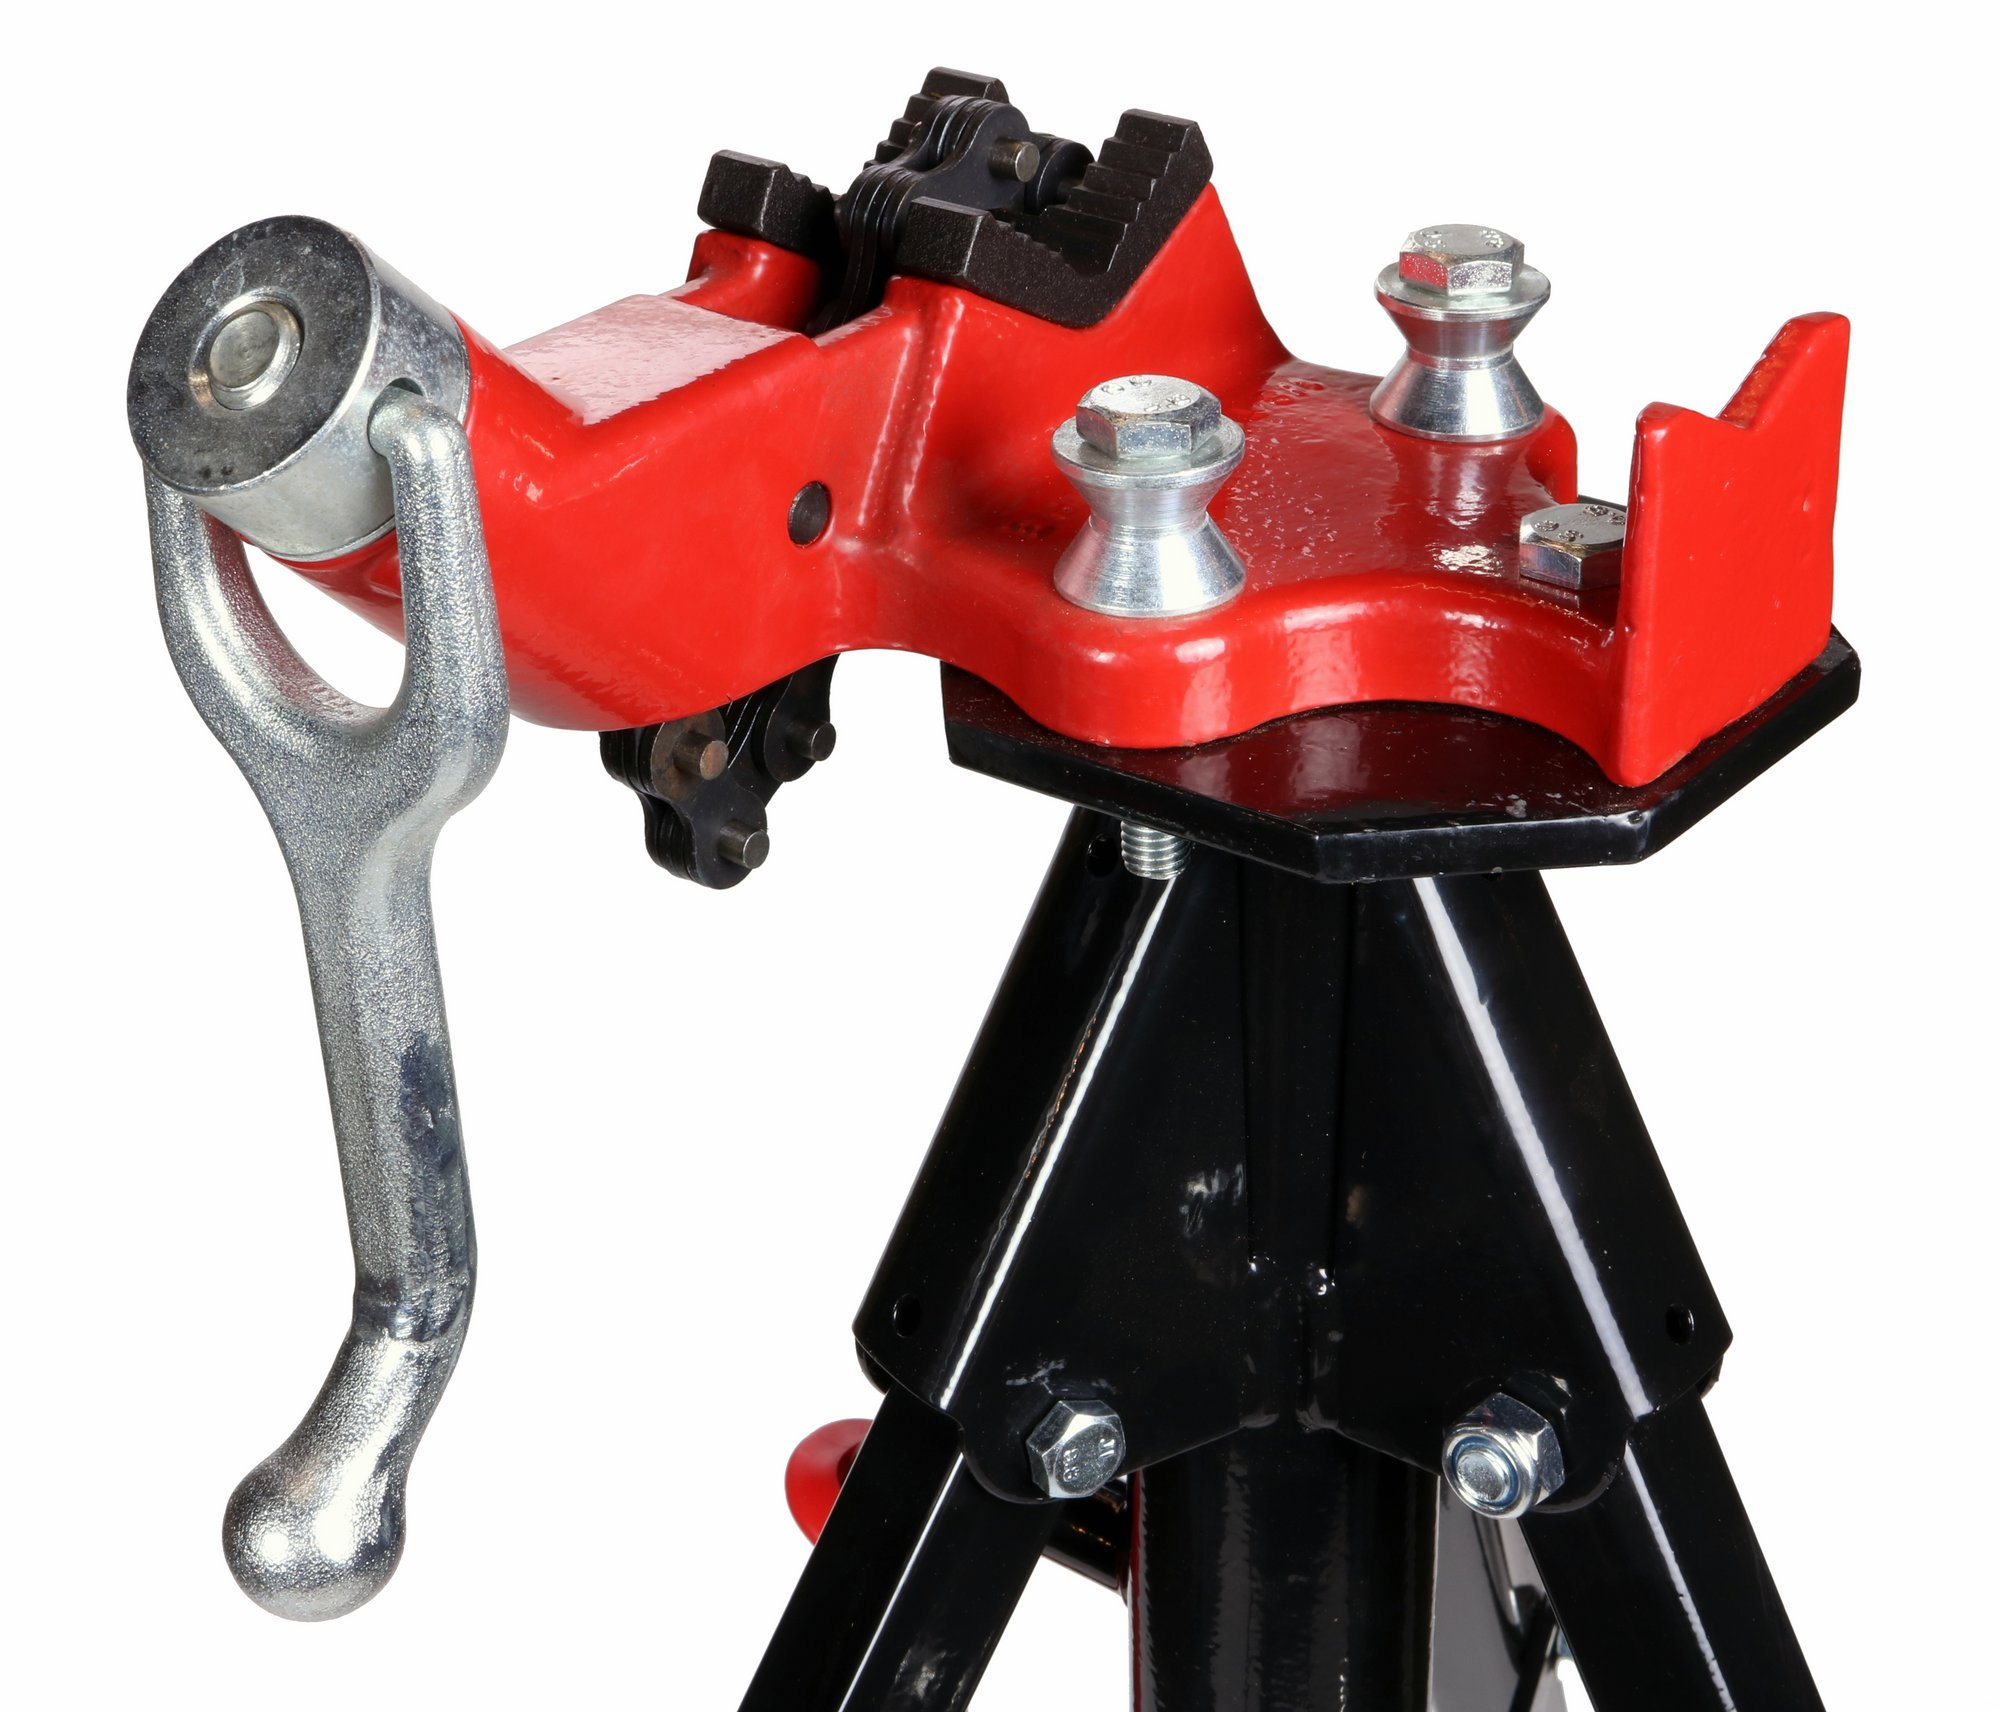 Toledo Pipe 425 Stand Portable Tripod Chain Vise works with RIDGID 12R 700 Pipe Threader by Toledo Pipe Tools (Image #3)